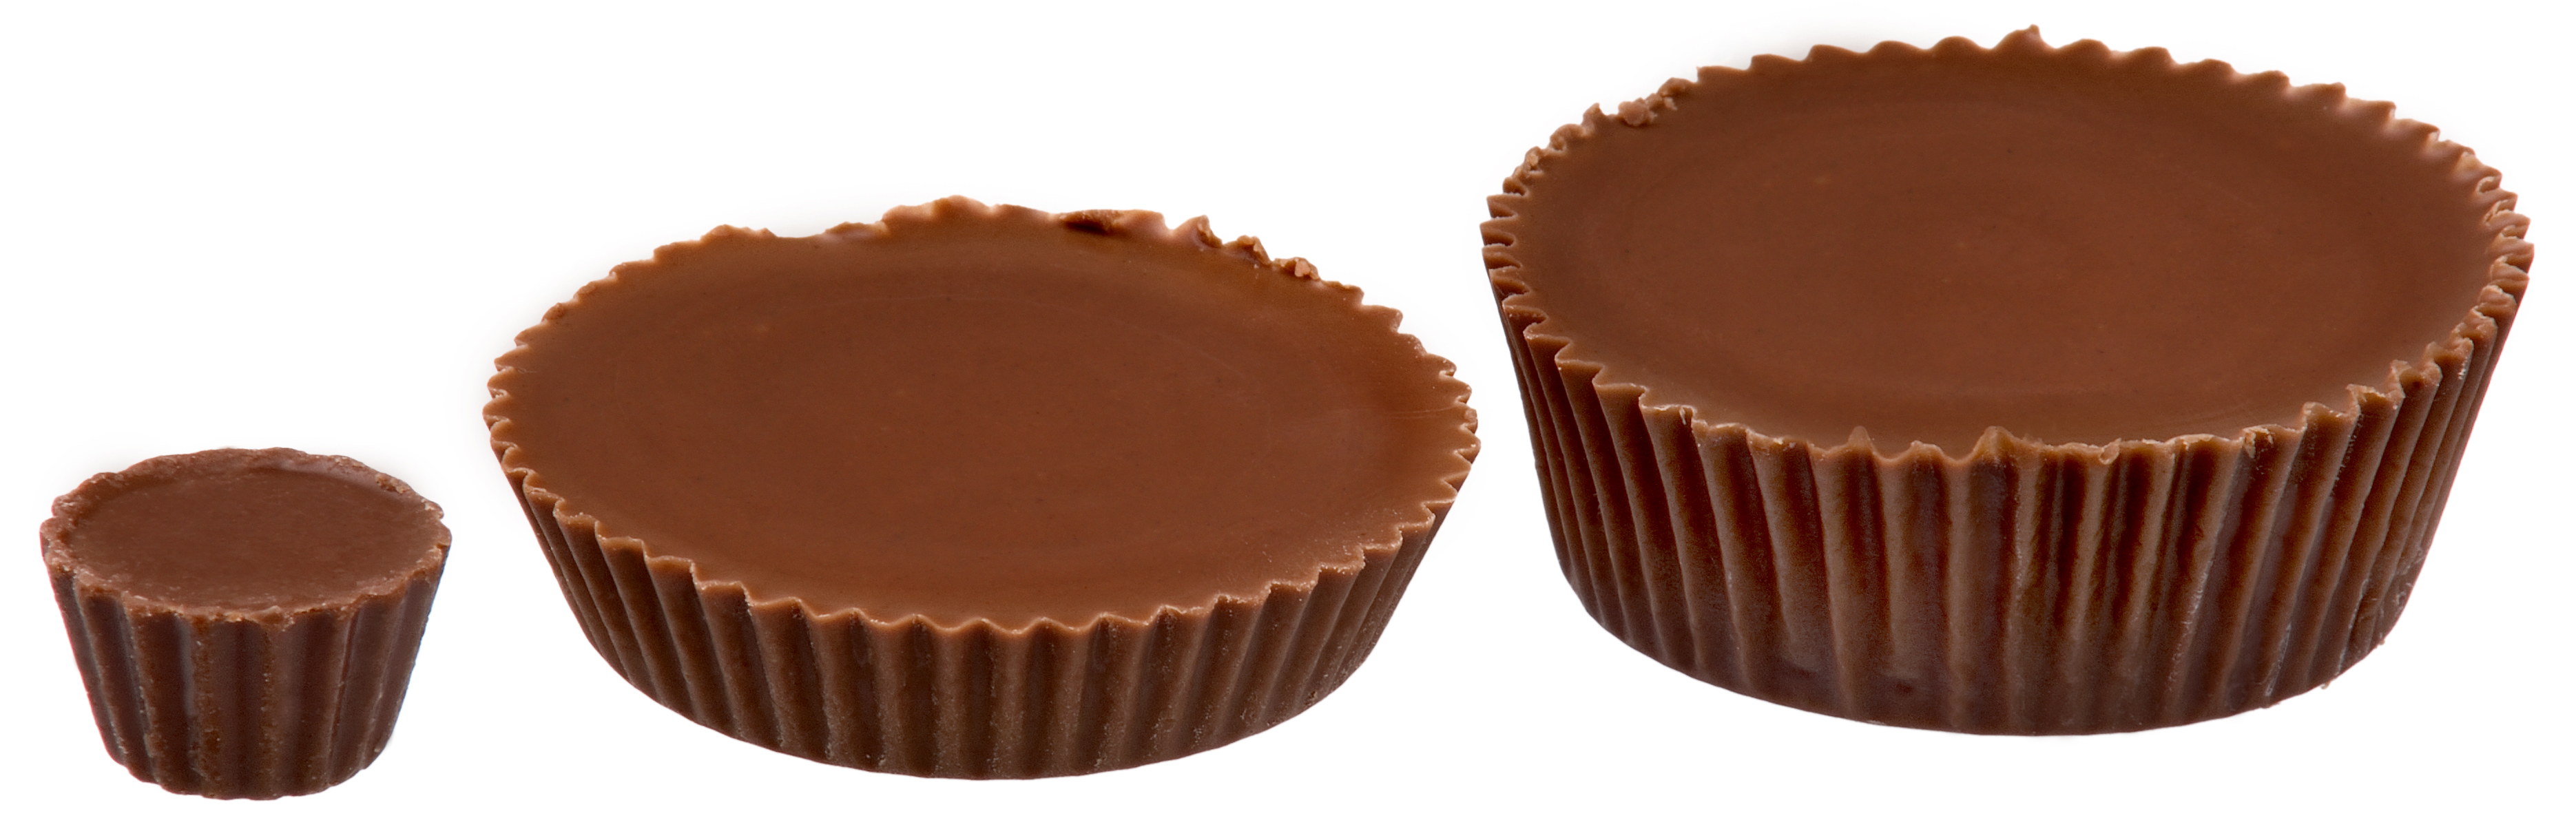 the history of reese's peanut butter The history of reese's peanut butter cups the history of reese's peanut butter cups creamy hershey's milk chocolate coats the fresh rich peanut butter that.